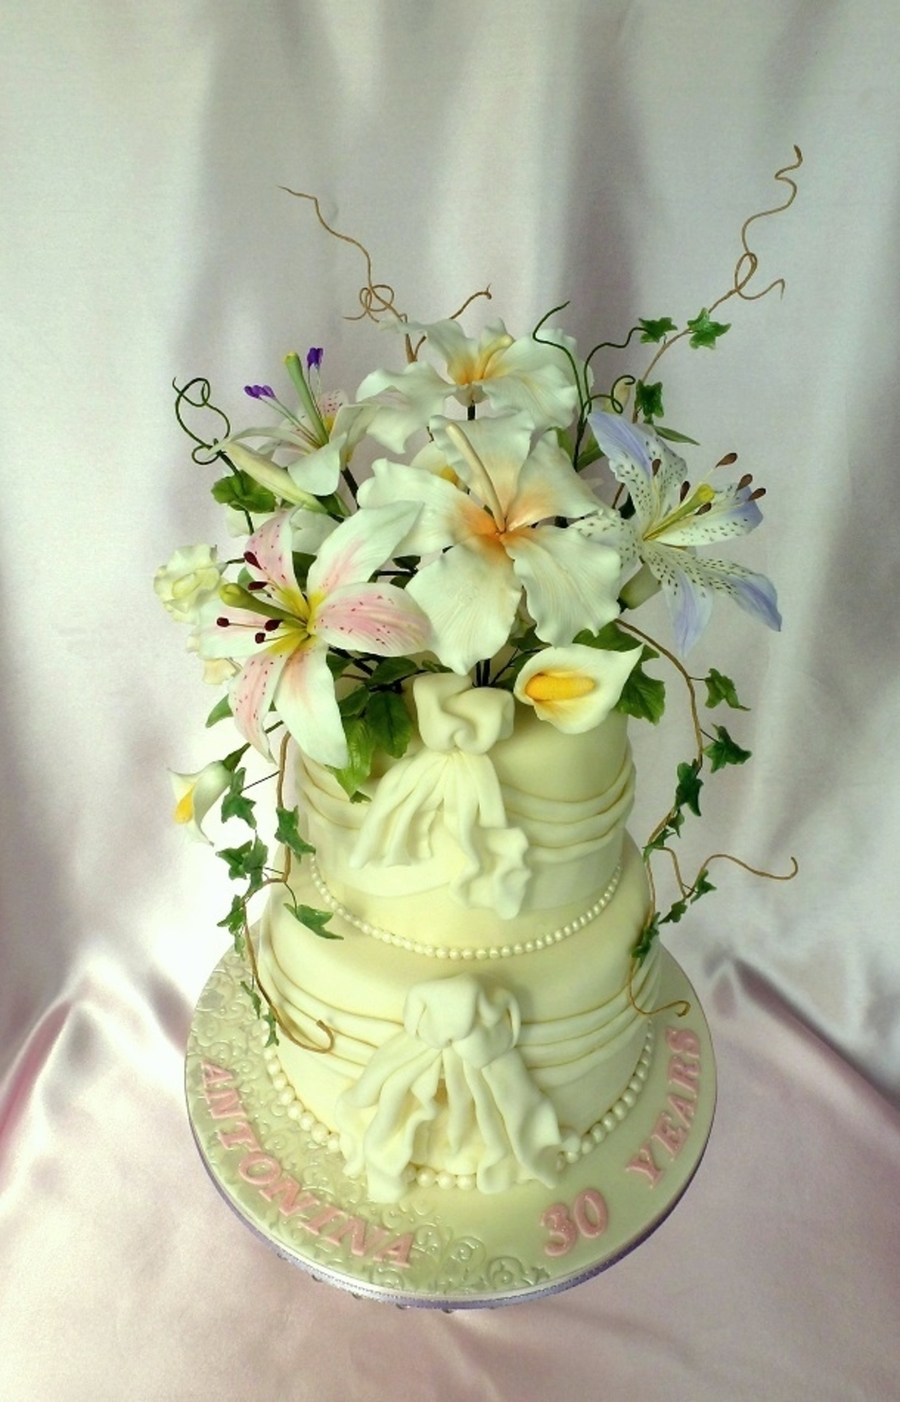 White Wedding Cake With Drapes And Gumpaste Flowers - CakeCentral.com